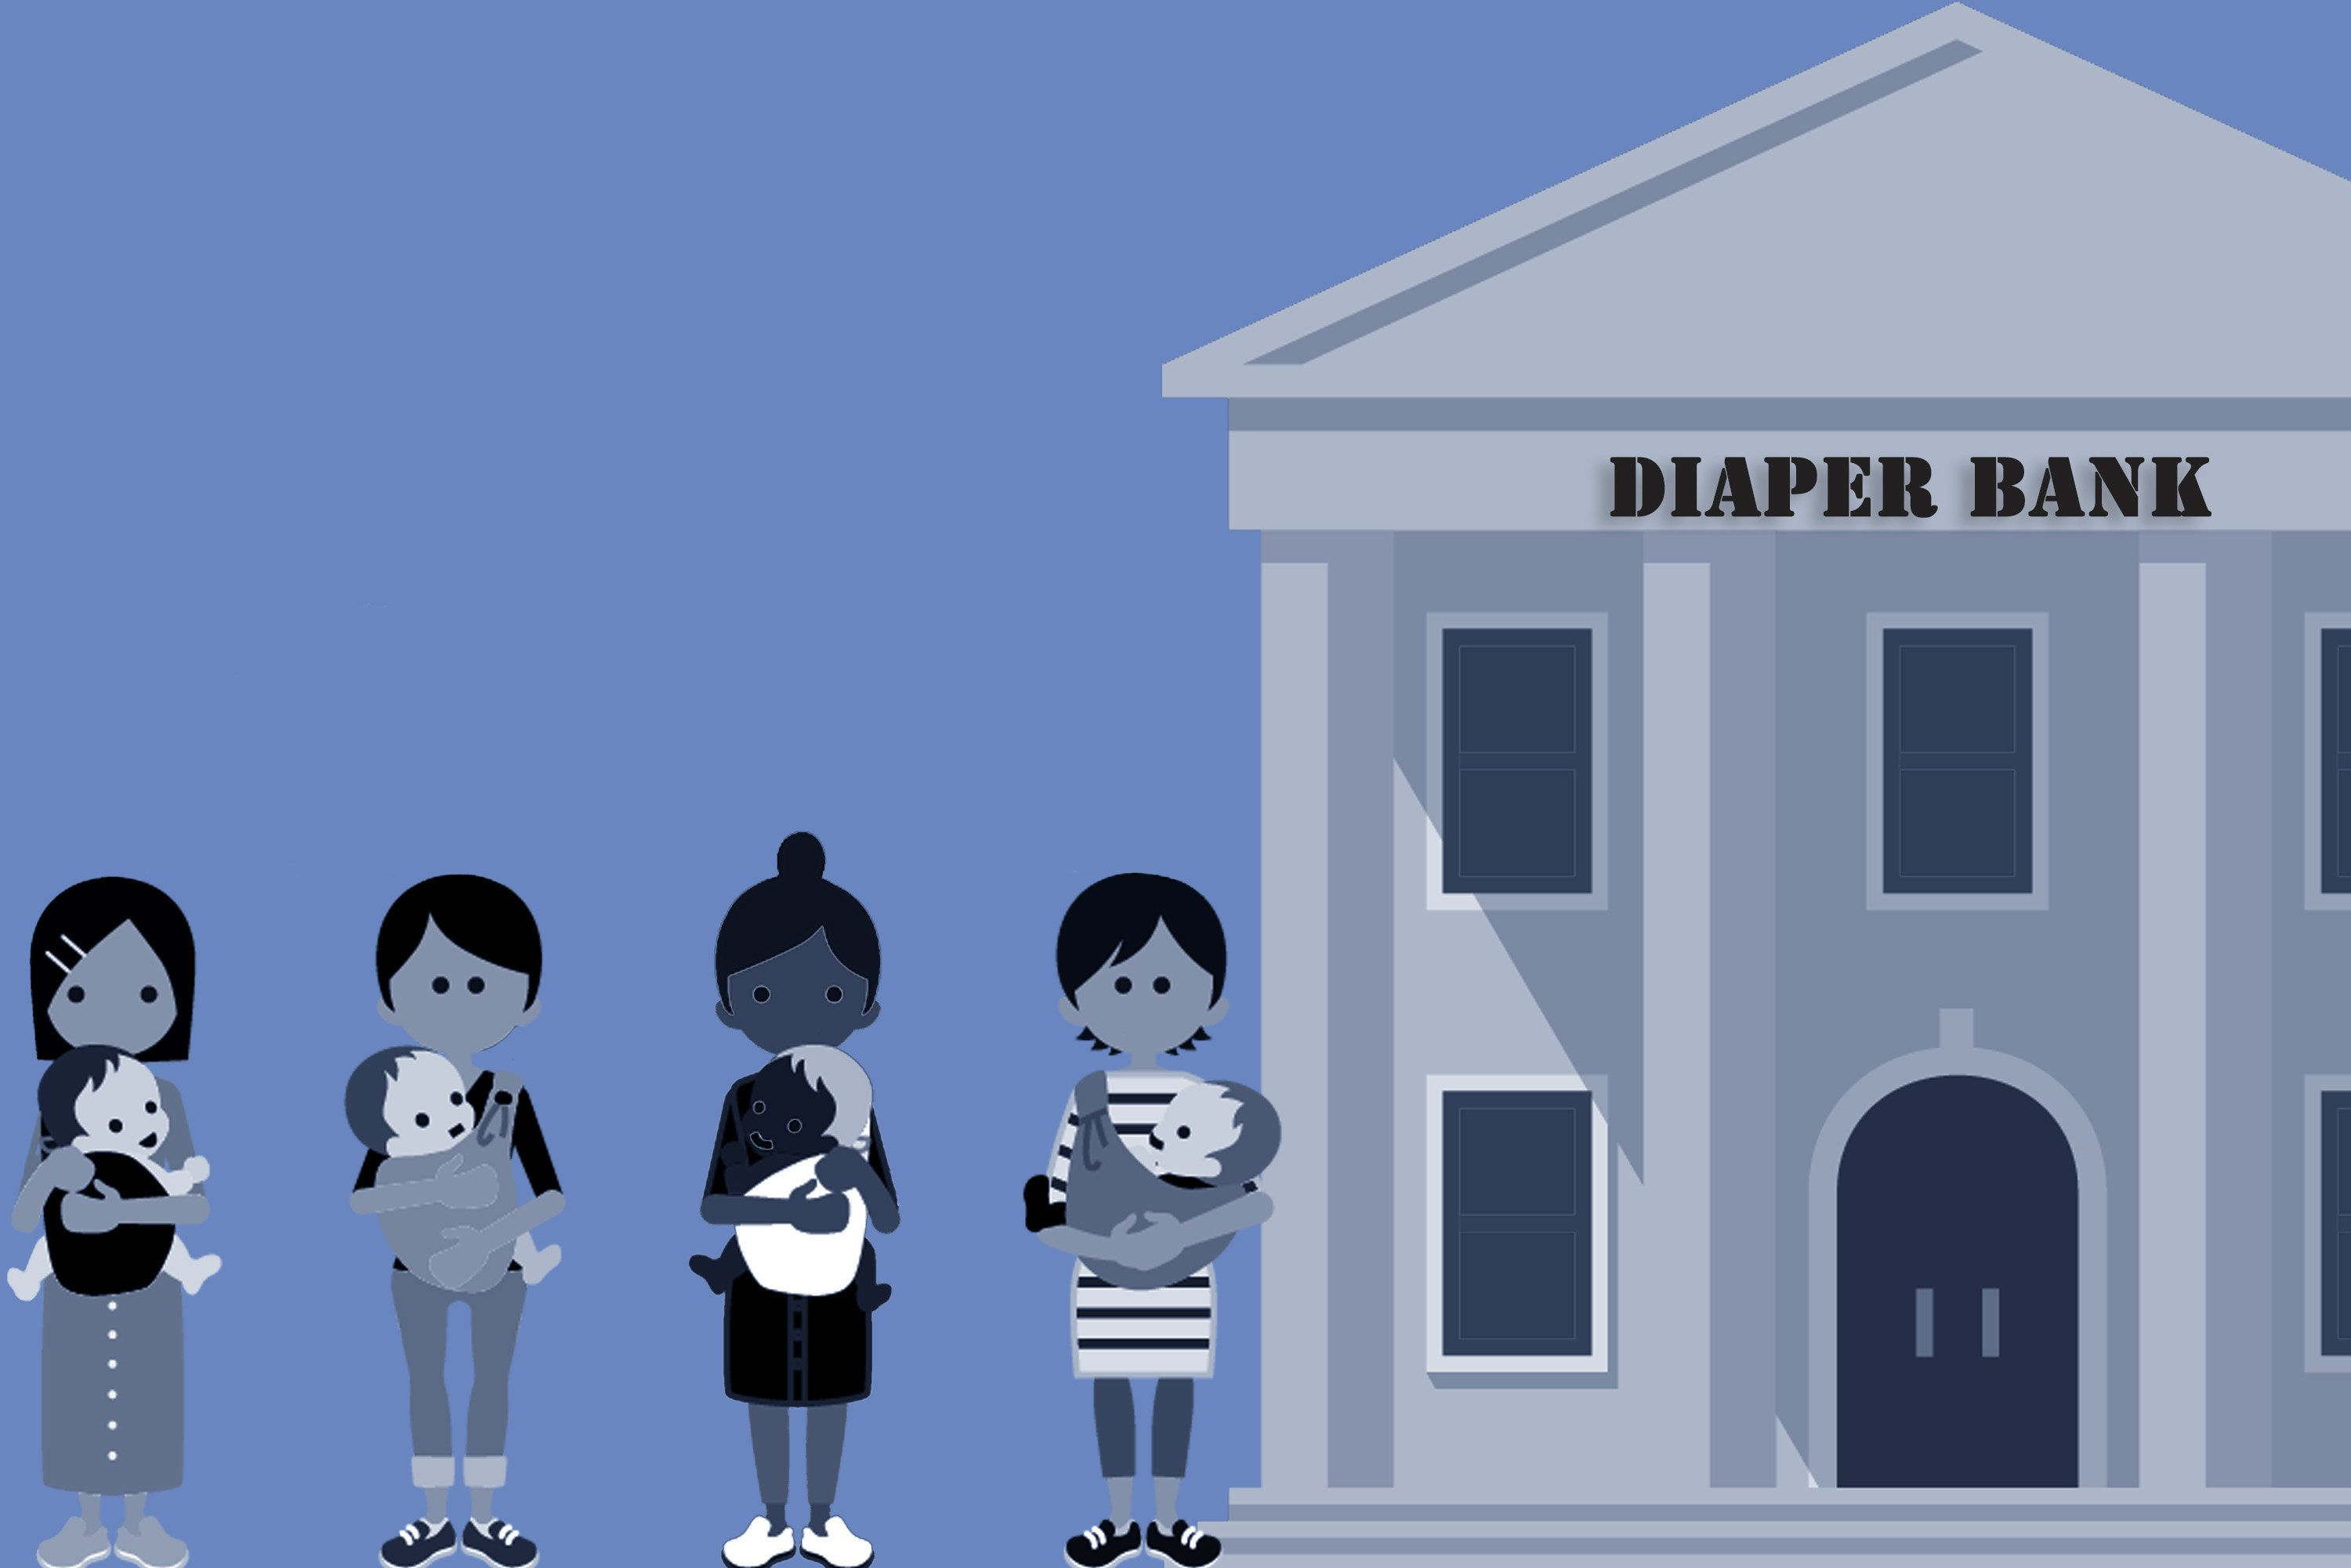 Bad Jobs And No Welfare Give Rise To A New Type Of Charity: The Diaper